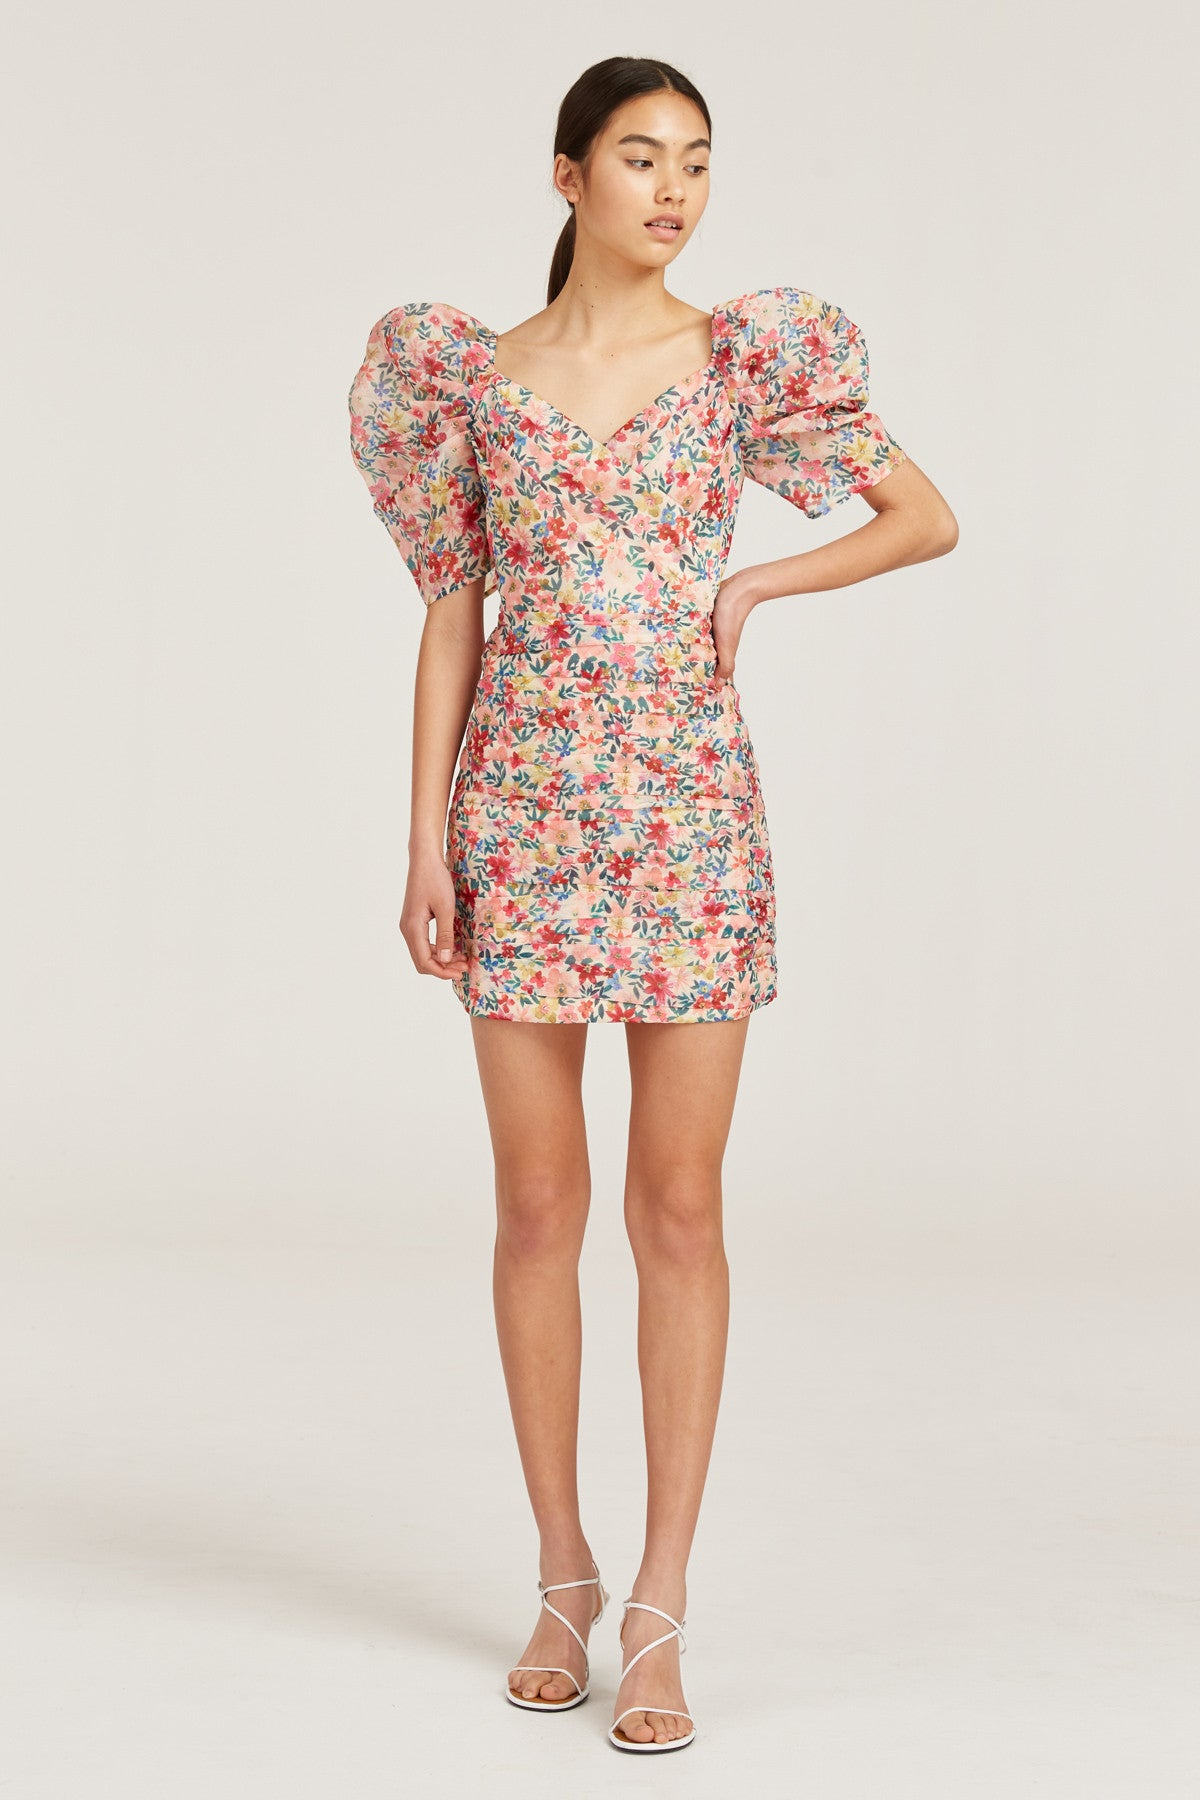 AND EVER MORE SHORT SLEEVE DRESS cream garden floral